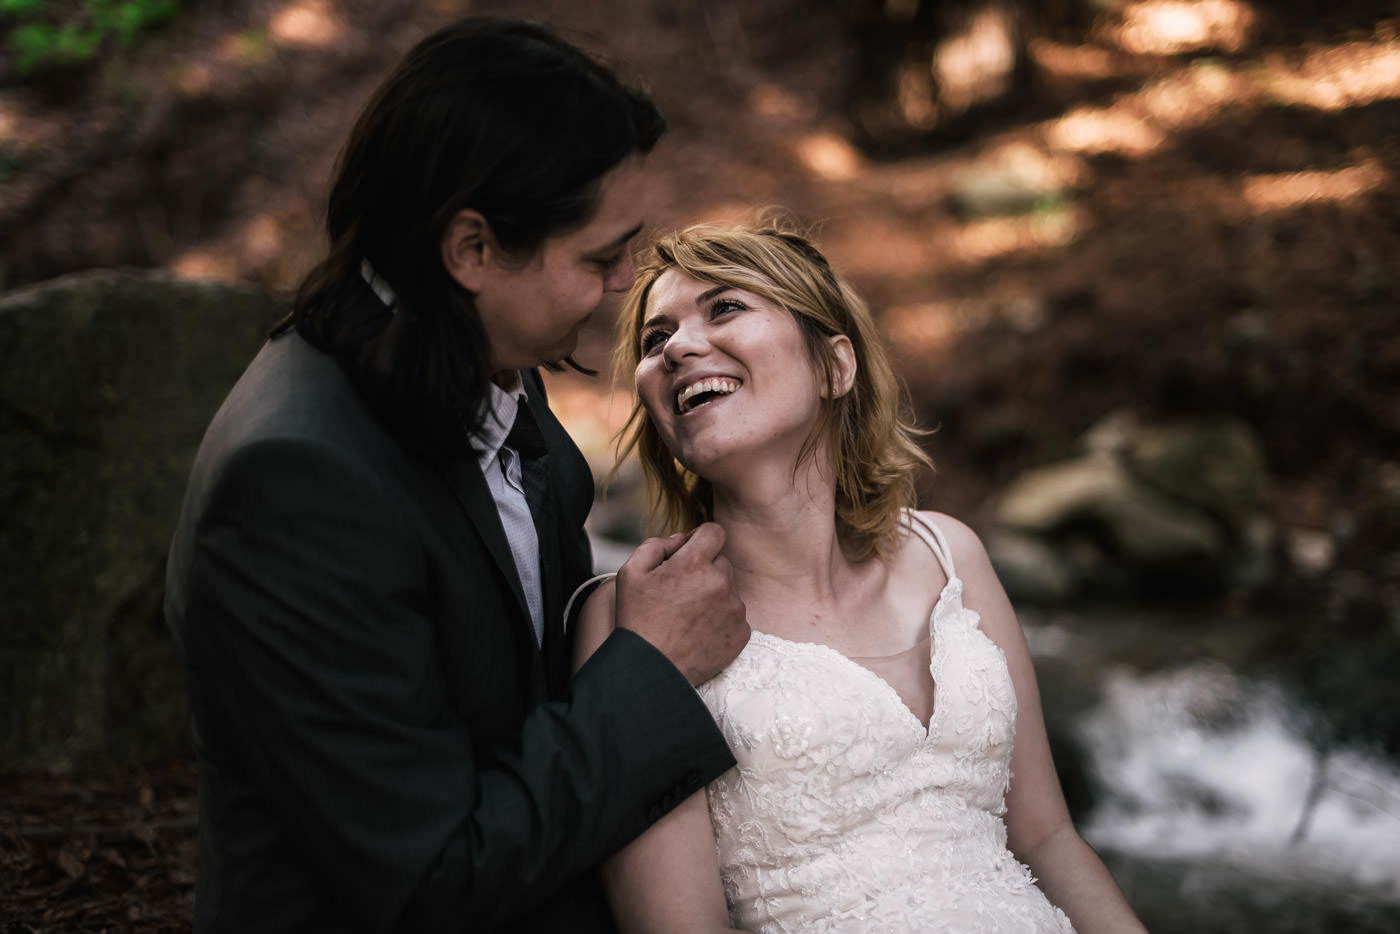 Bride gives her husband a big smile at their elopement.